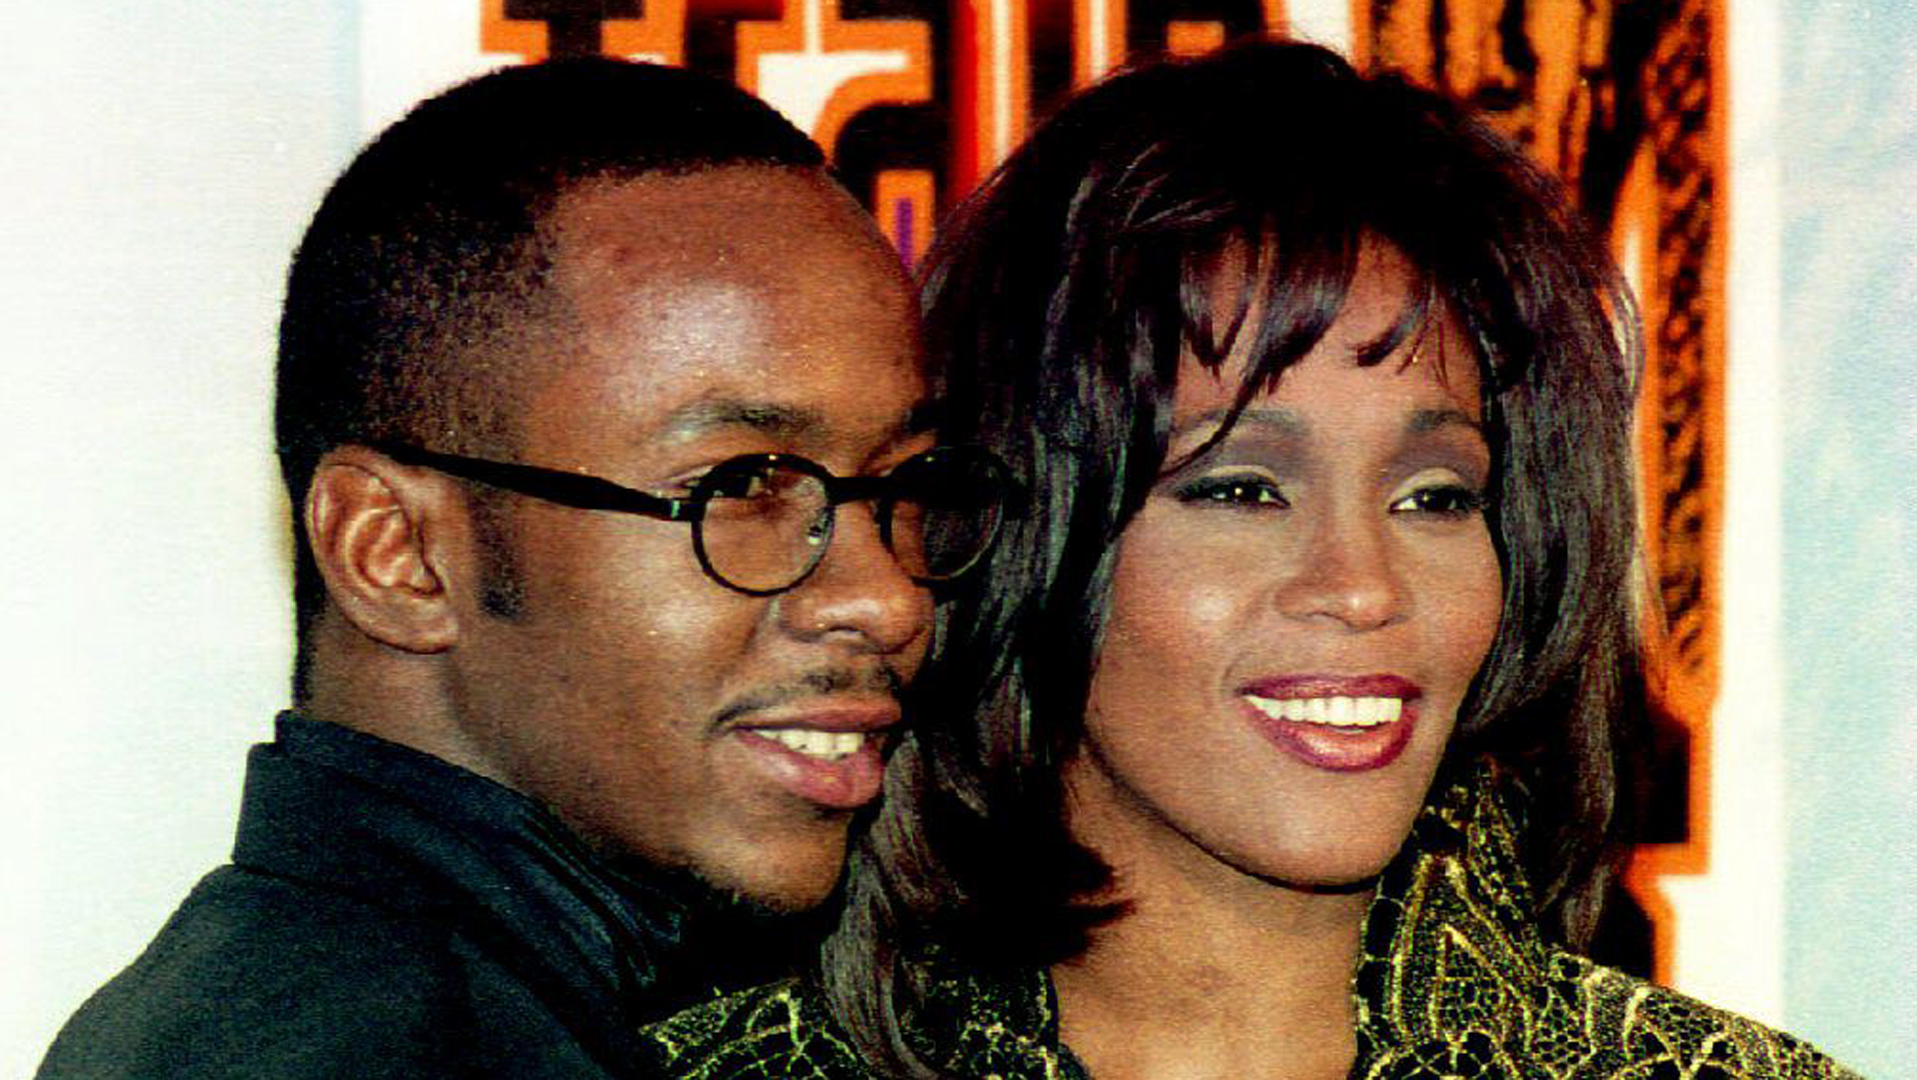 Bobby Brown and Whitney Houston are seen in a file photo. (Credit: VINCE BUCCI/AFP/Getty Images)